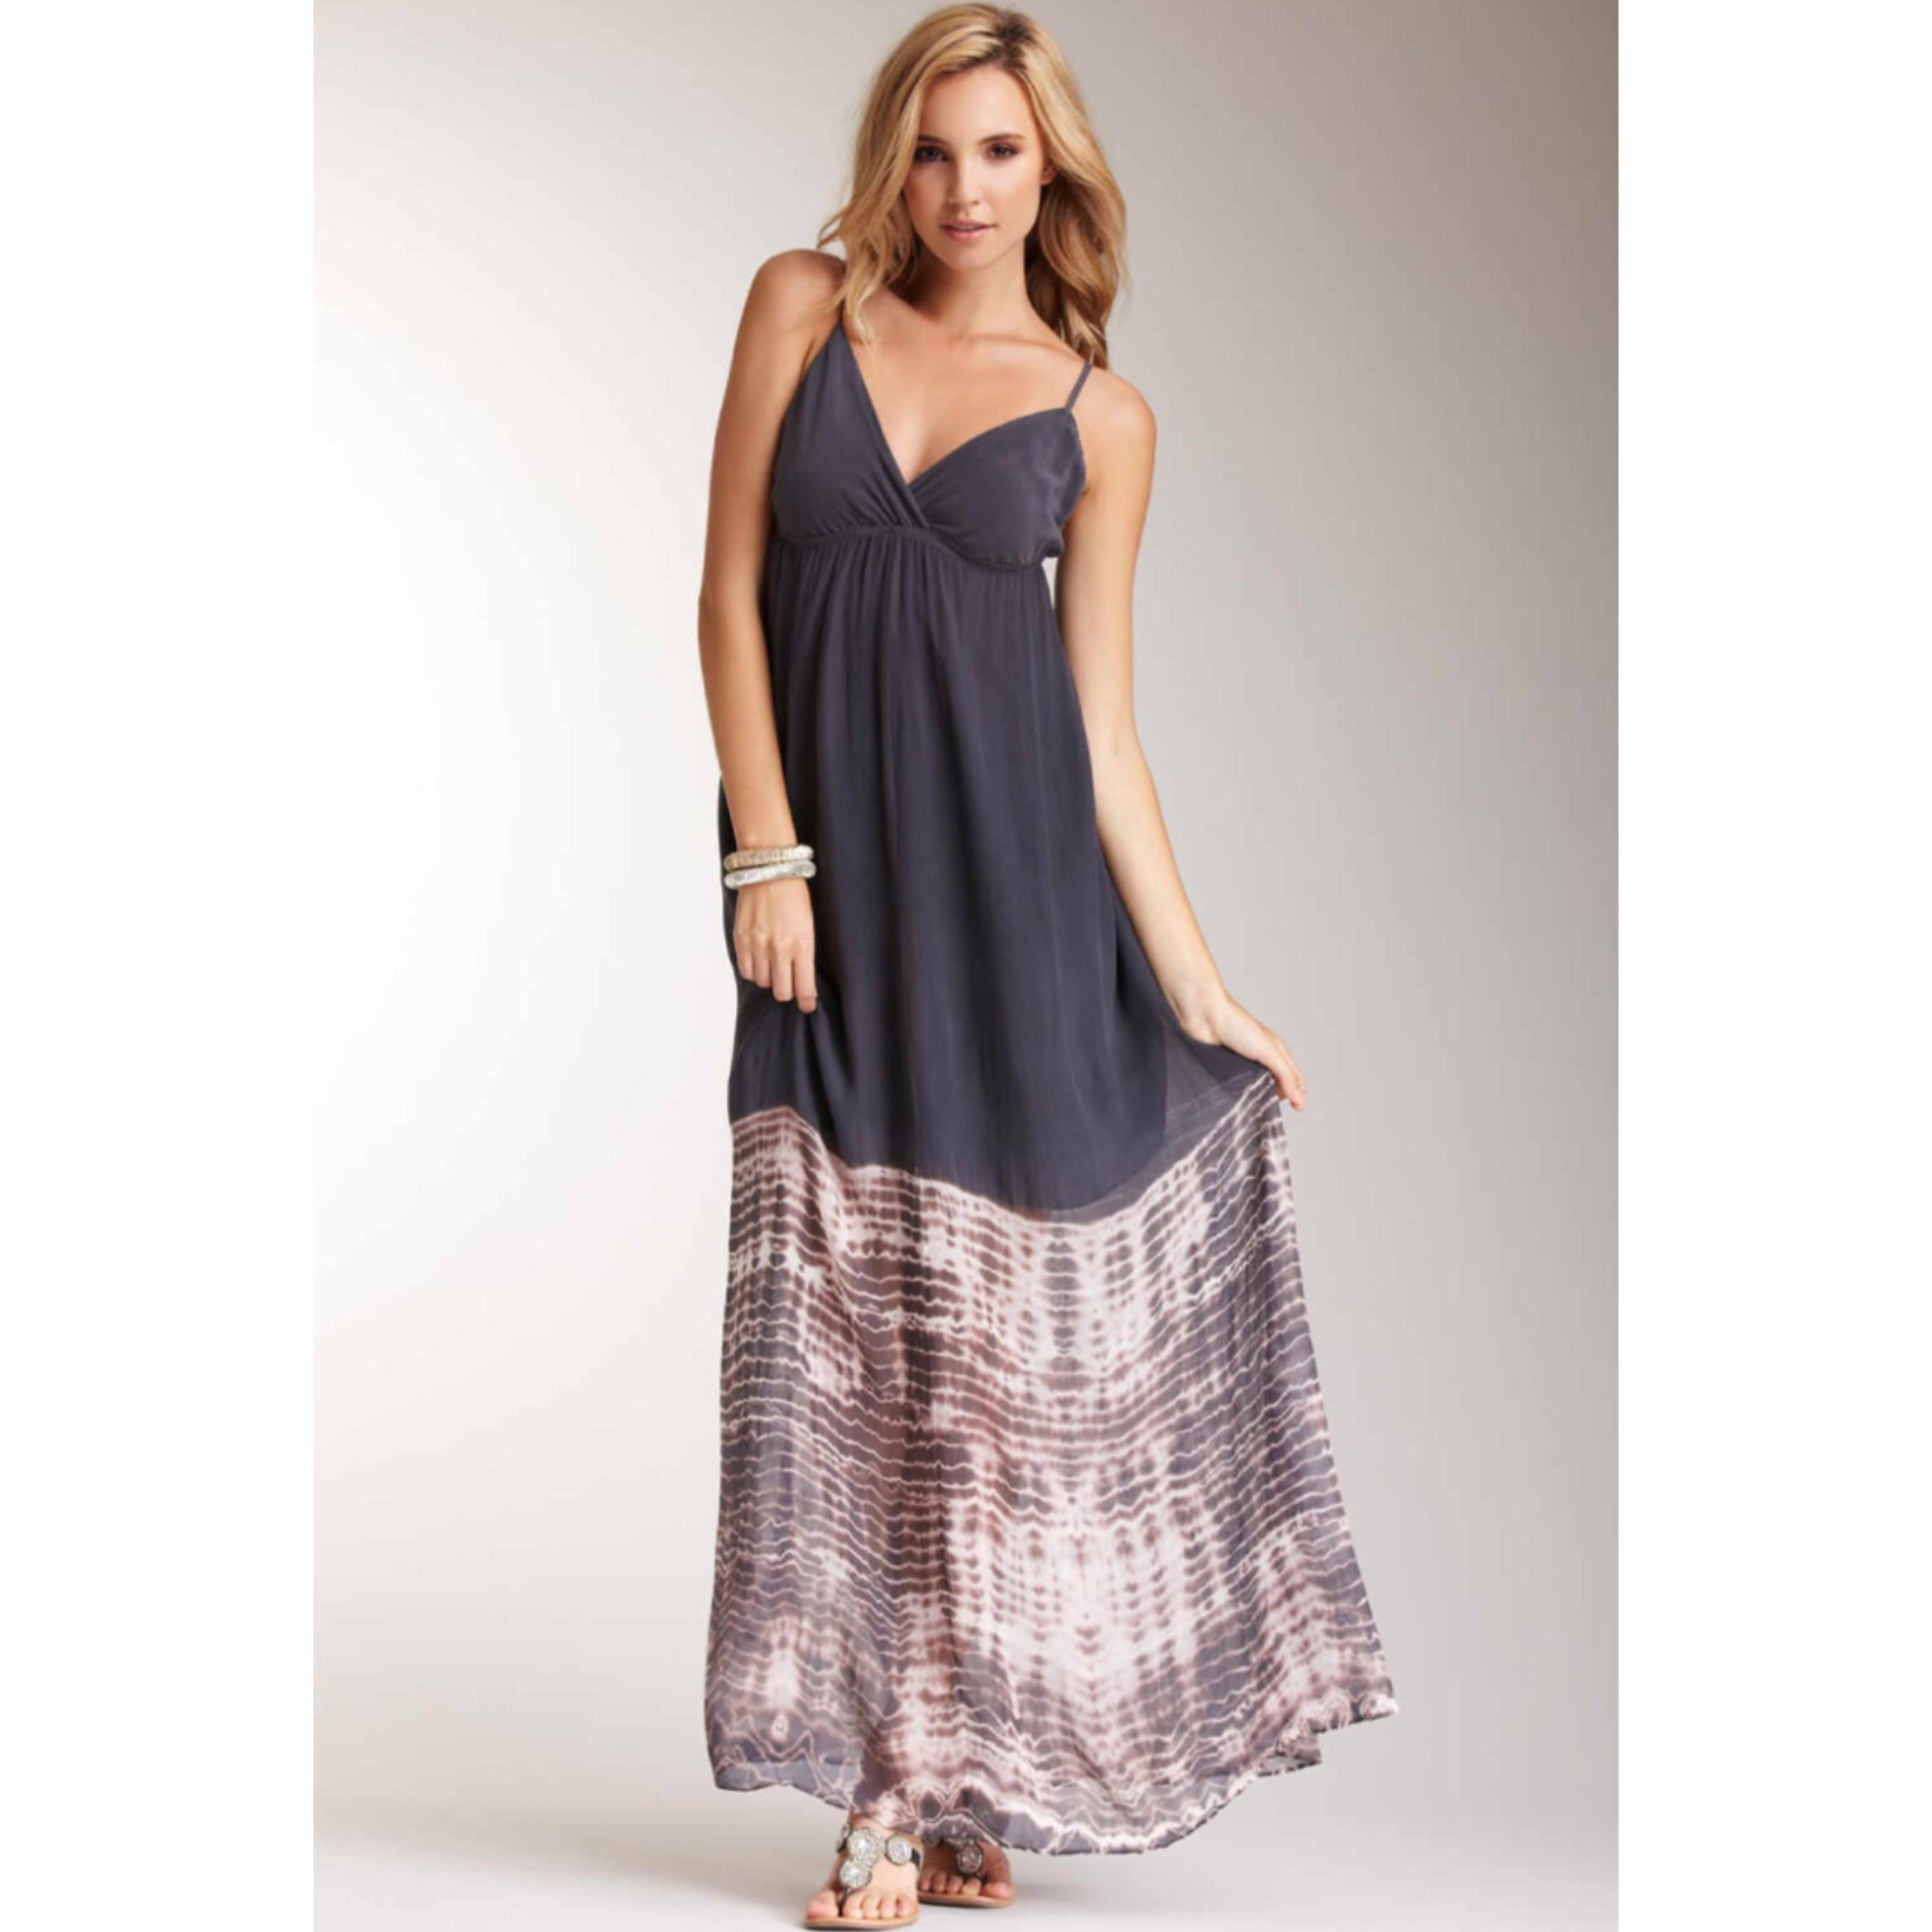 Gypsy 05 maxi dresses on sale